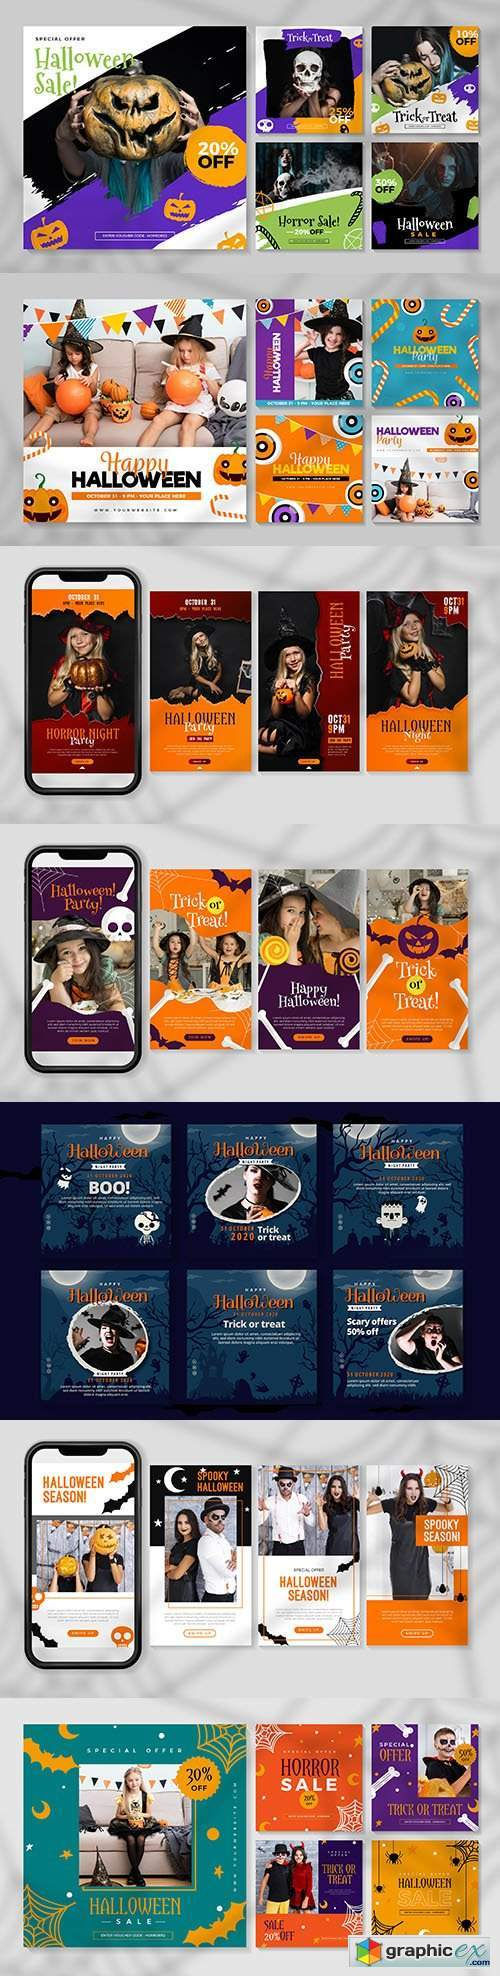 Halloween festival instagram story design posts